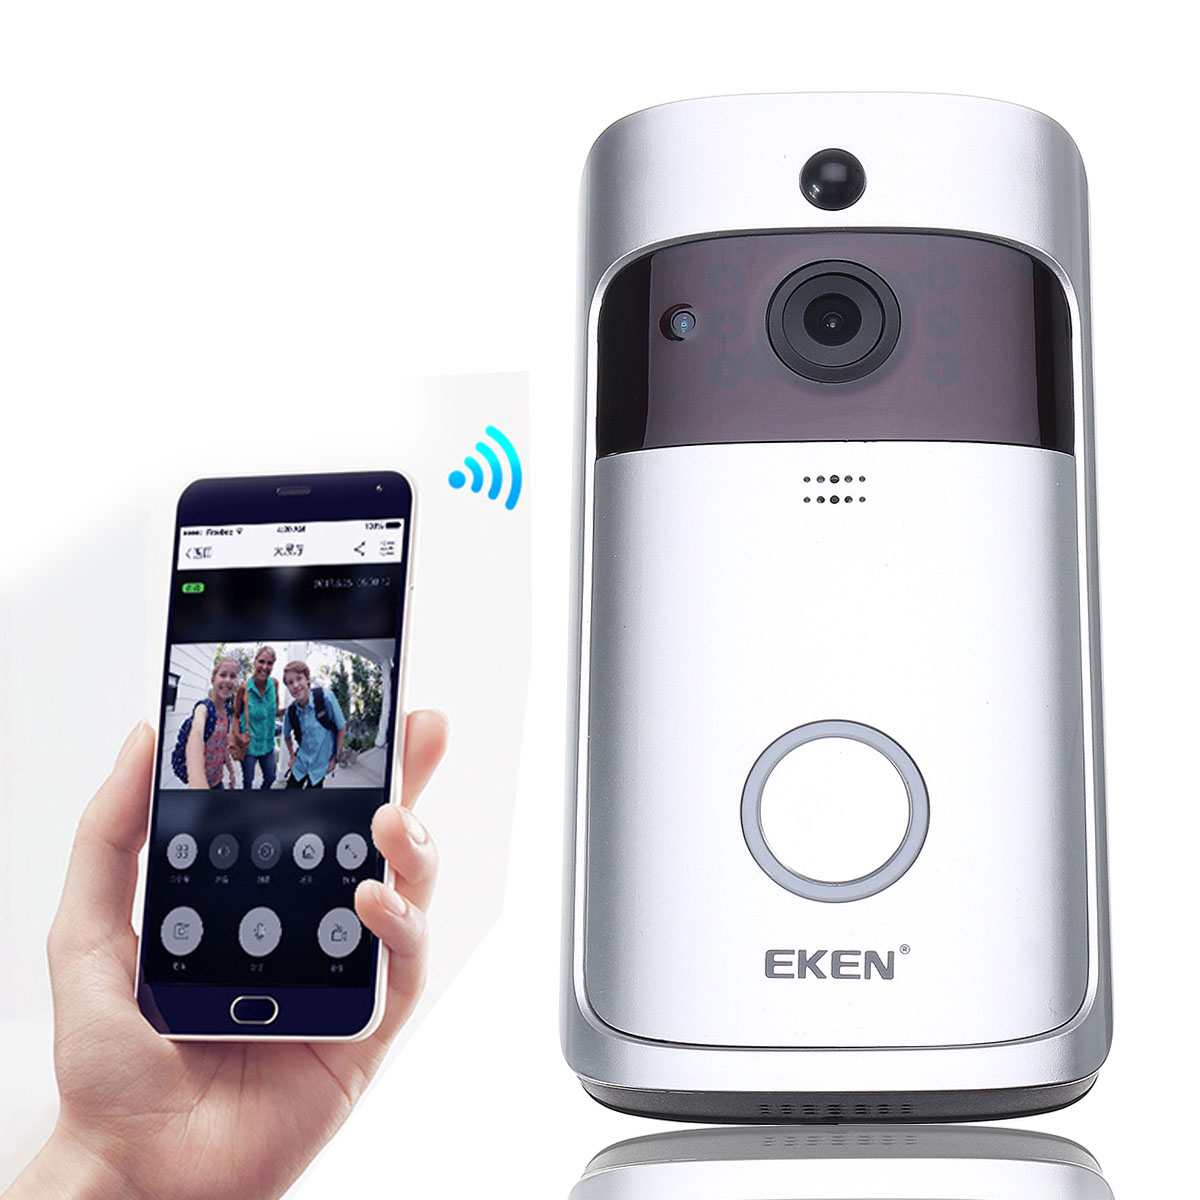 EKEN A8 Smart WiFi Video Visible Motion Detection Doorbell